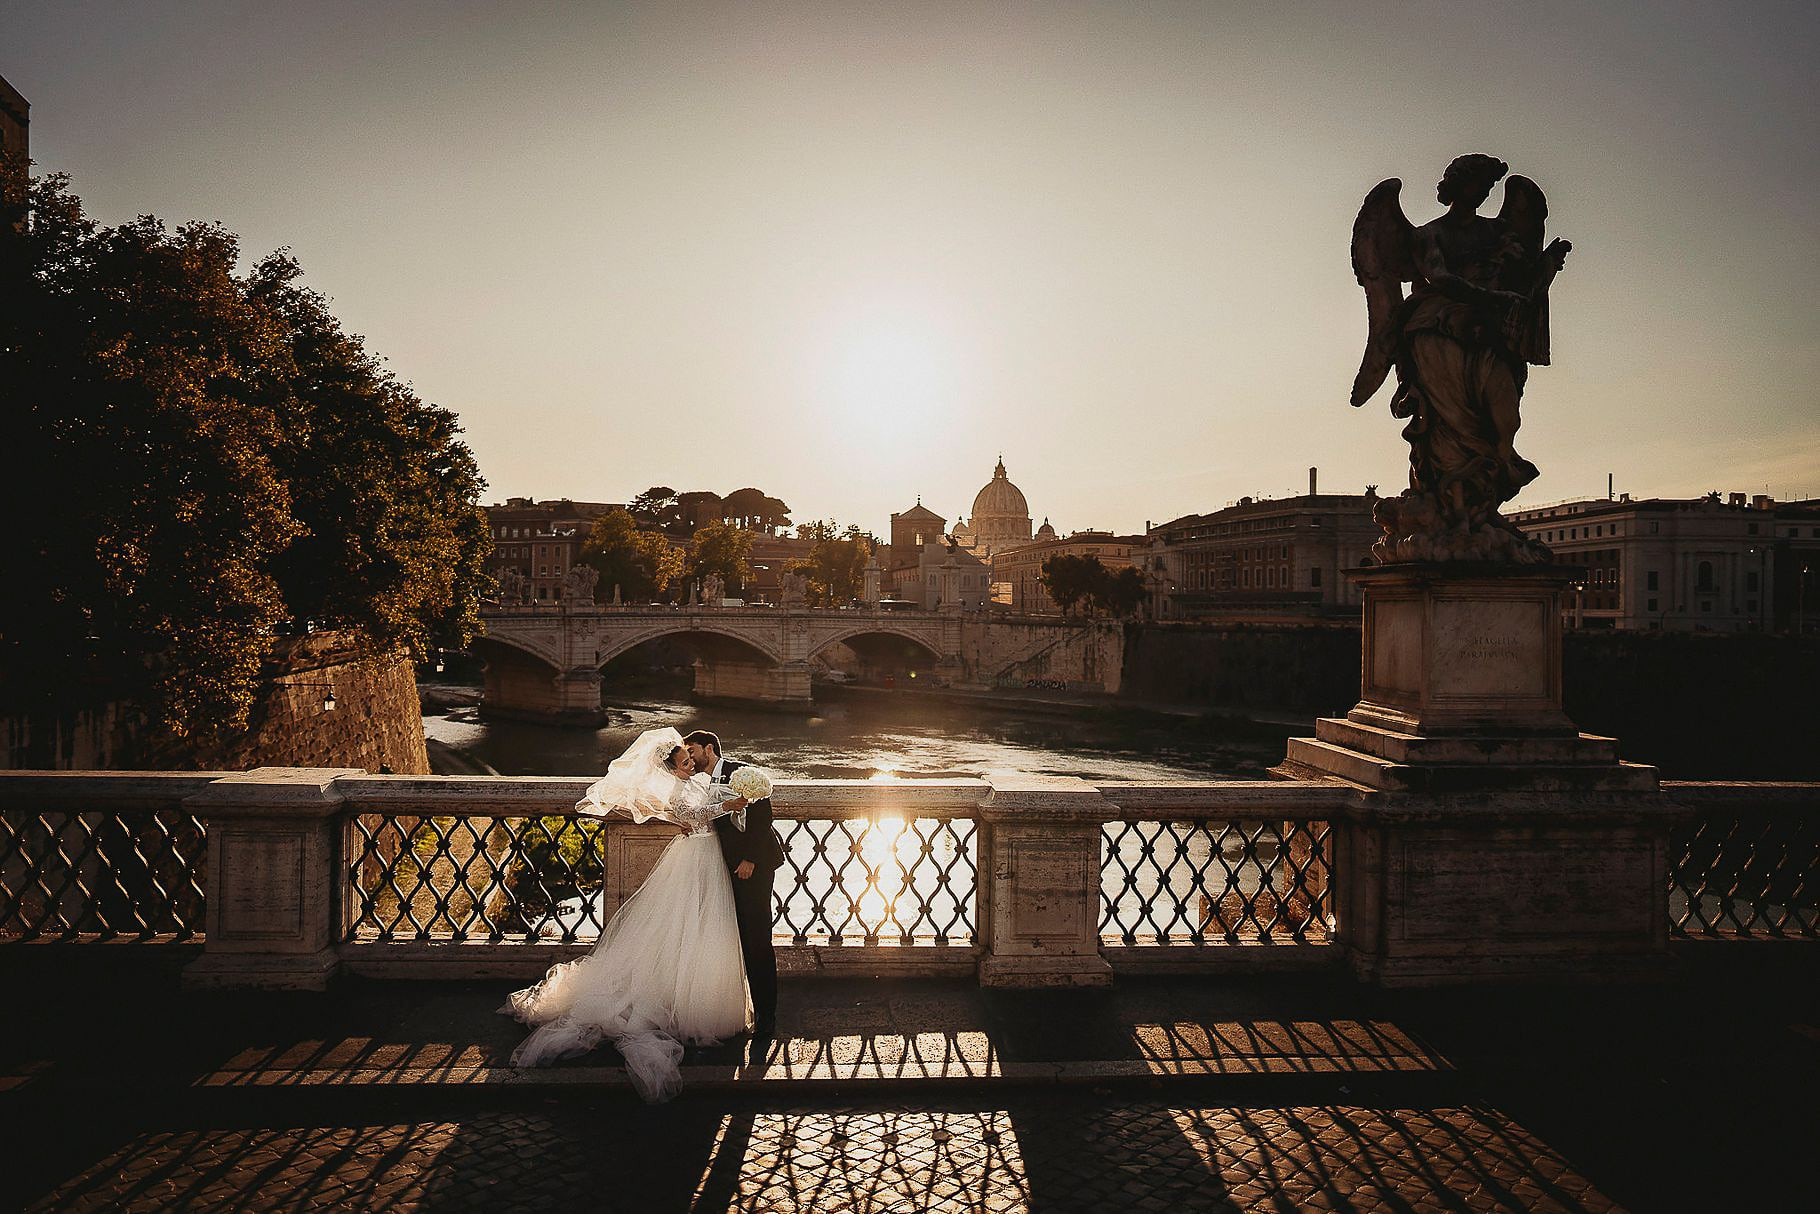 bridal couple photographed by the wedding photographer Italy on the ponte dell'angelo in rome with the tiber and st. peter dome in the background